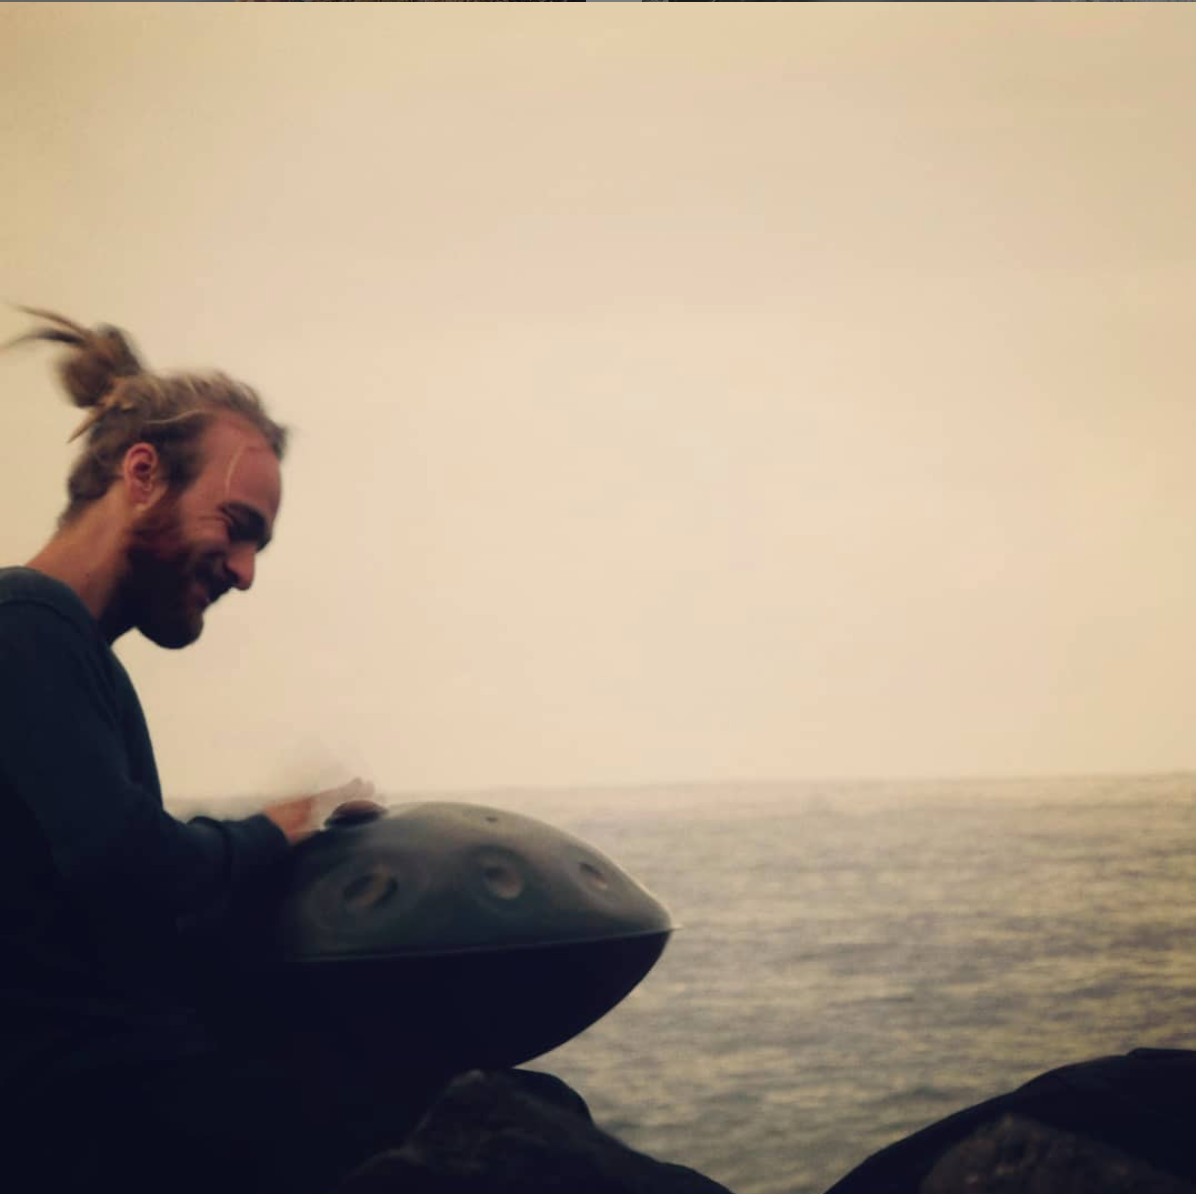 Handpan player Malte Marten of Yatao by the see